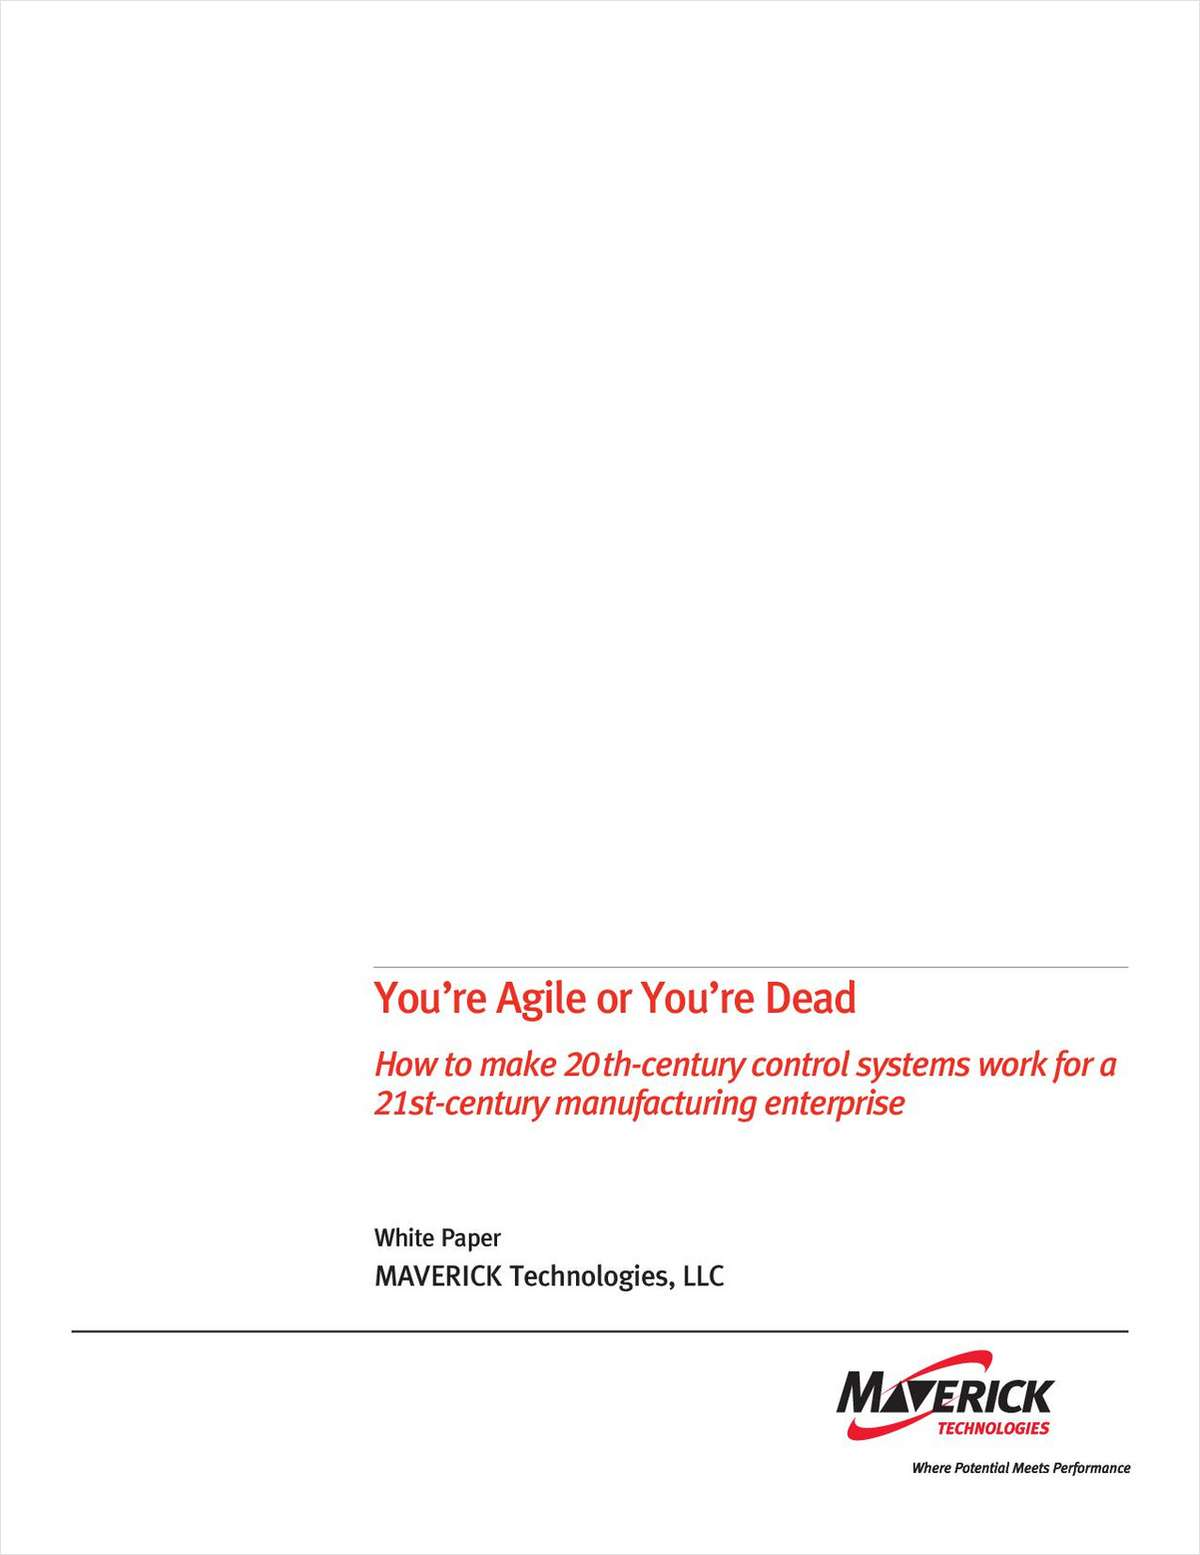 DCS White Paper: You're Agile or You're Dead